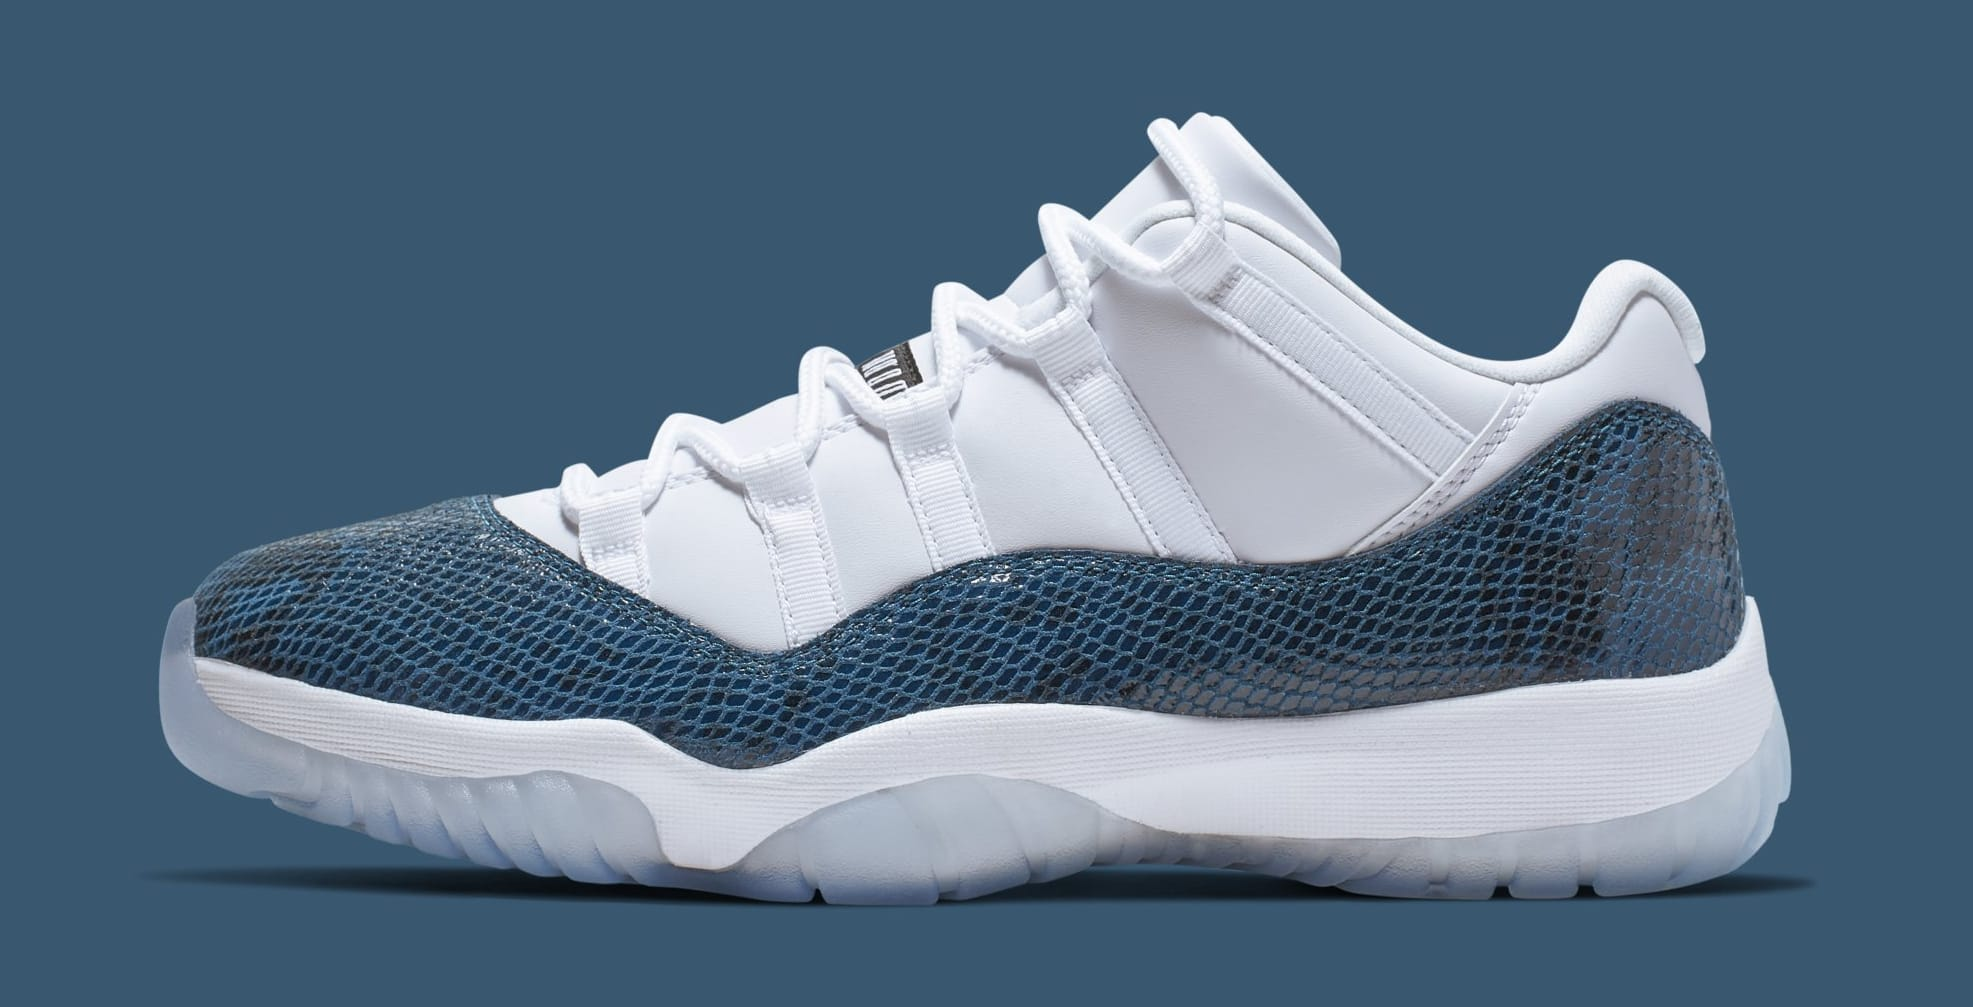 ad846595ba6e Air Jordan 11 Low  Blue Snakeskin  Release Date CD6846-102